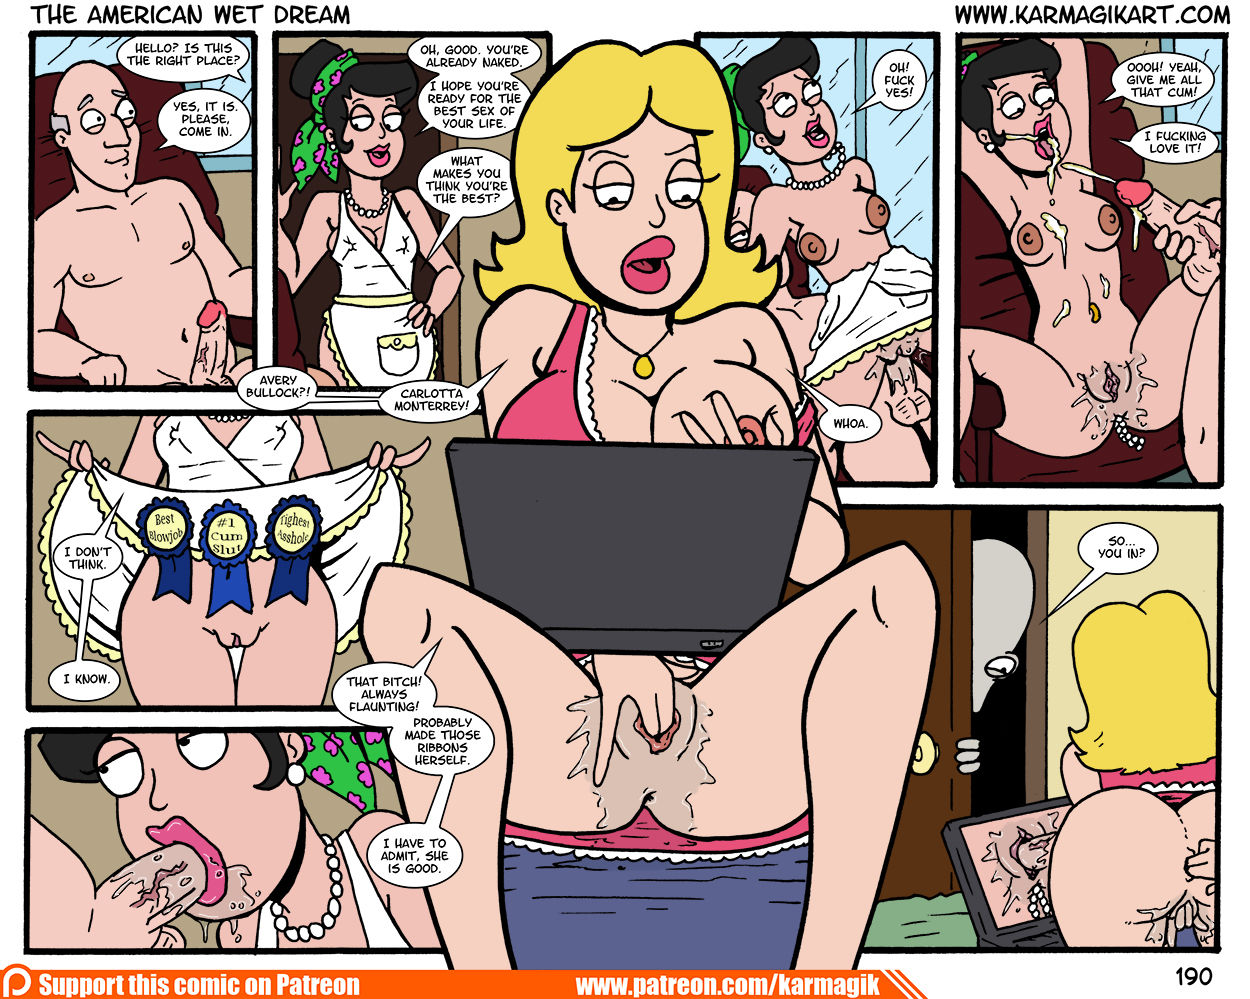 Karmagik-The American Wet Dream (American Dad) [In Progress]- Free Adult Porn Comix